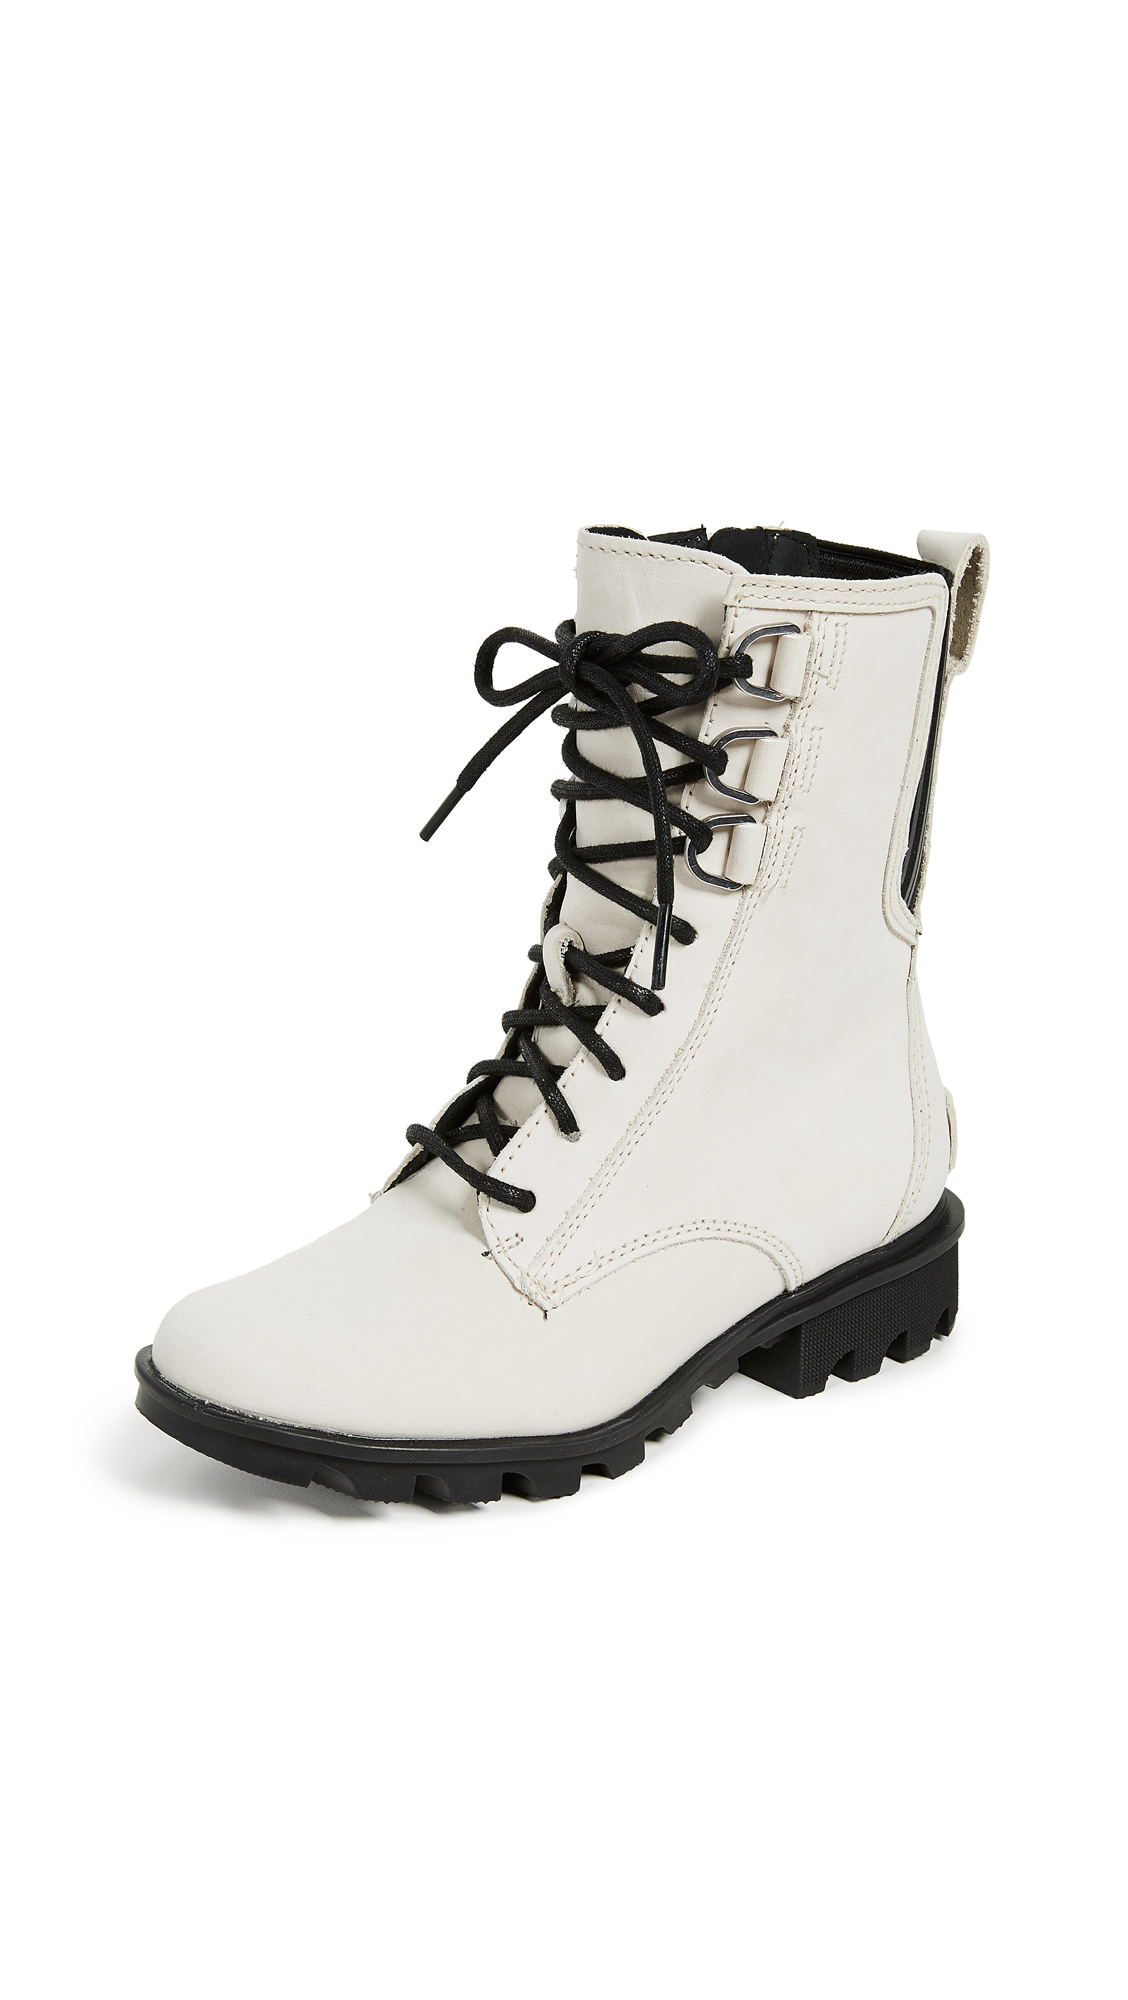 Sorel Phoenix Lace Up Boots - Tussock/Fawn